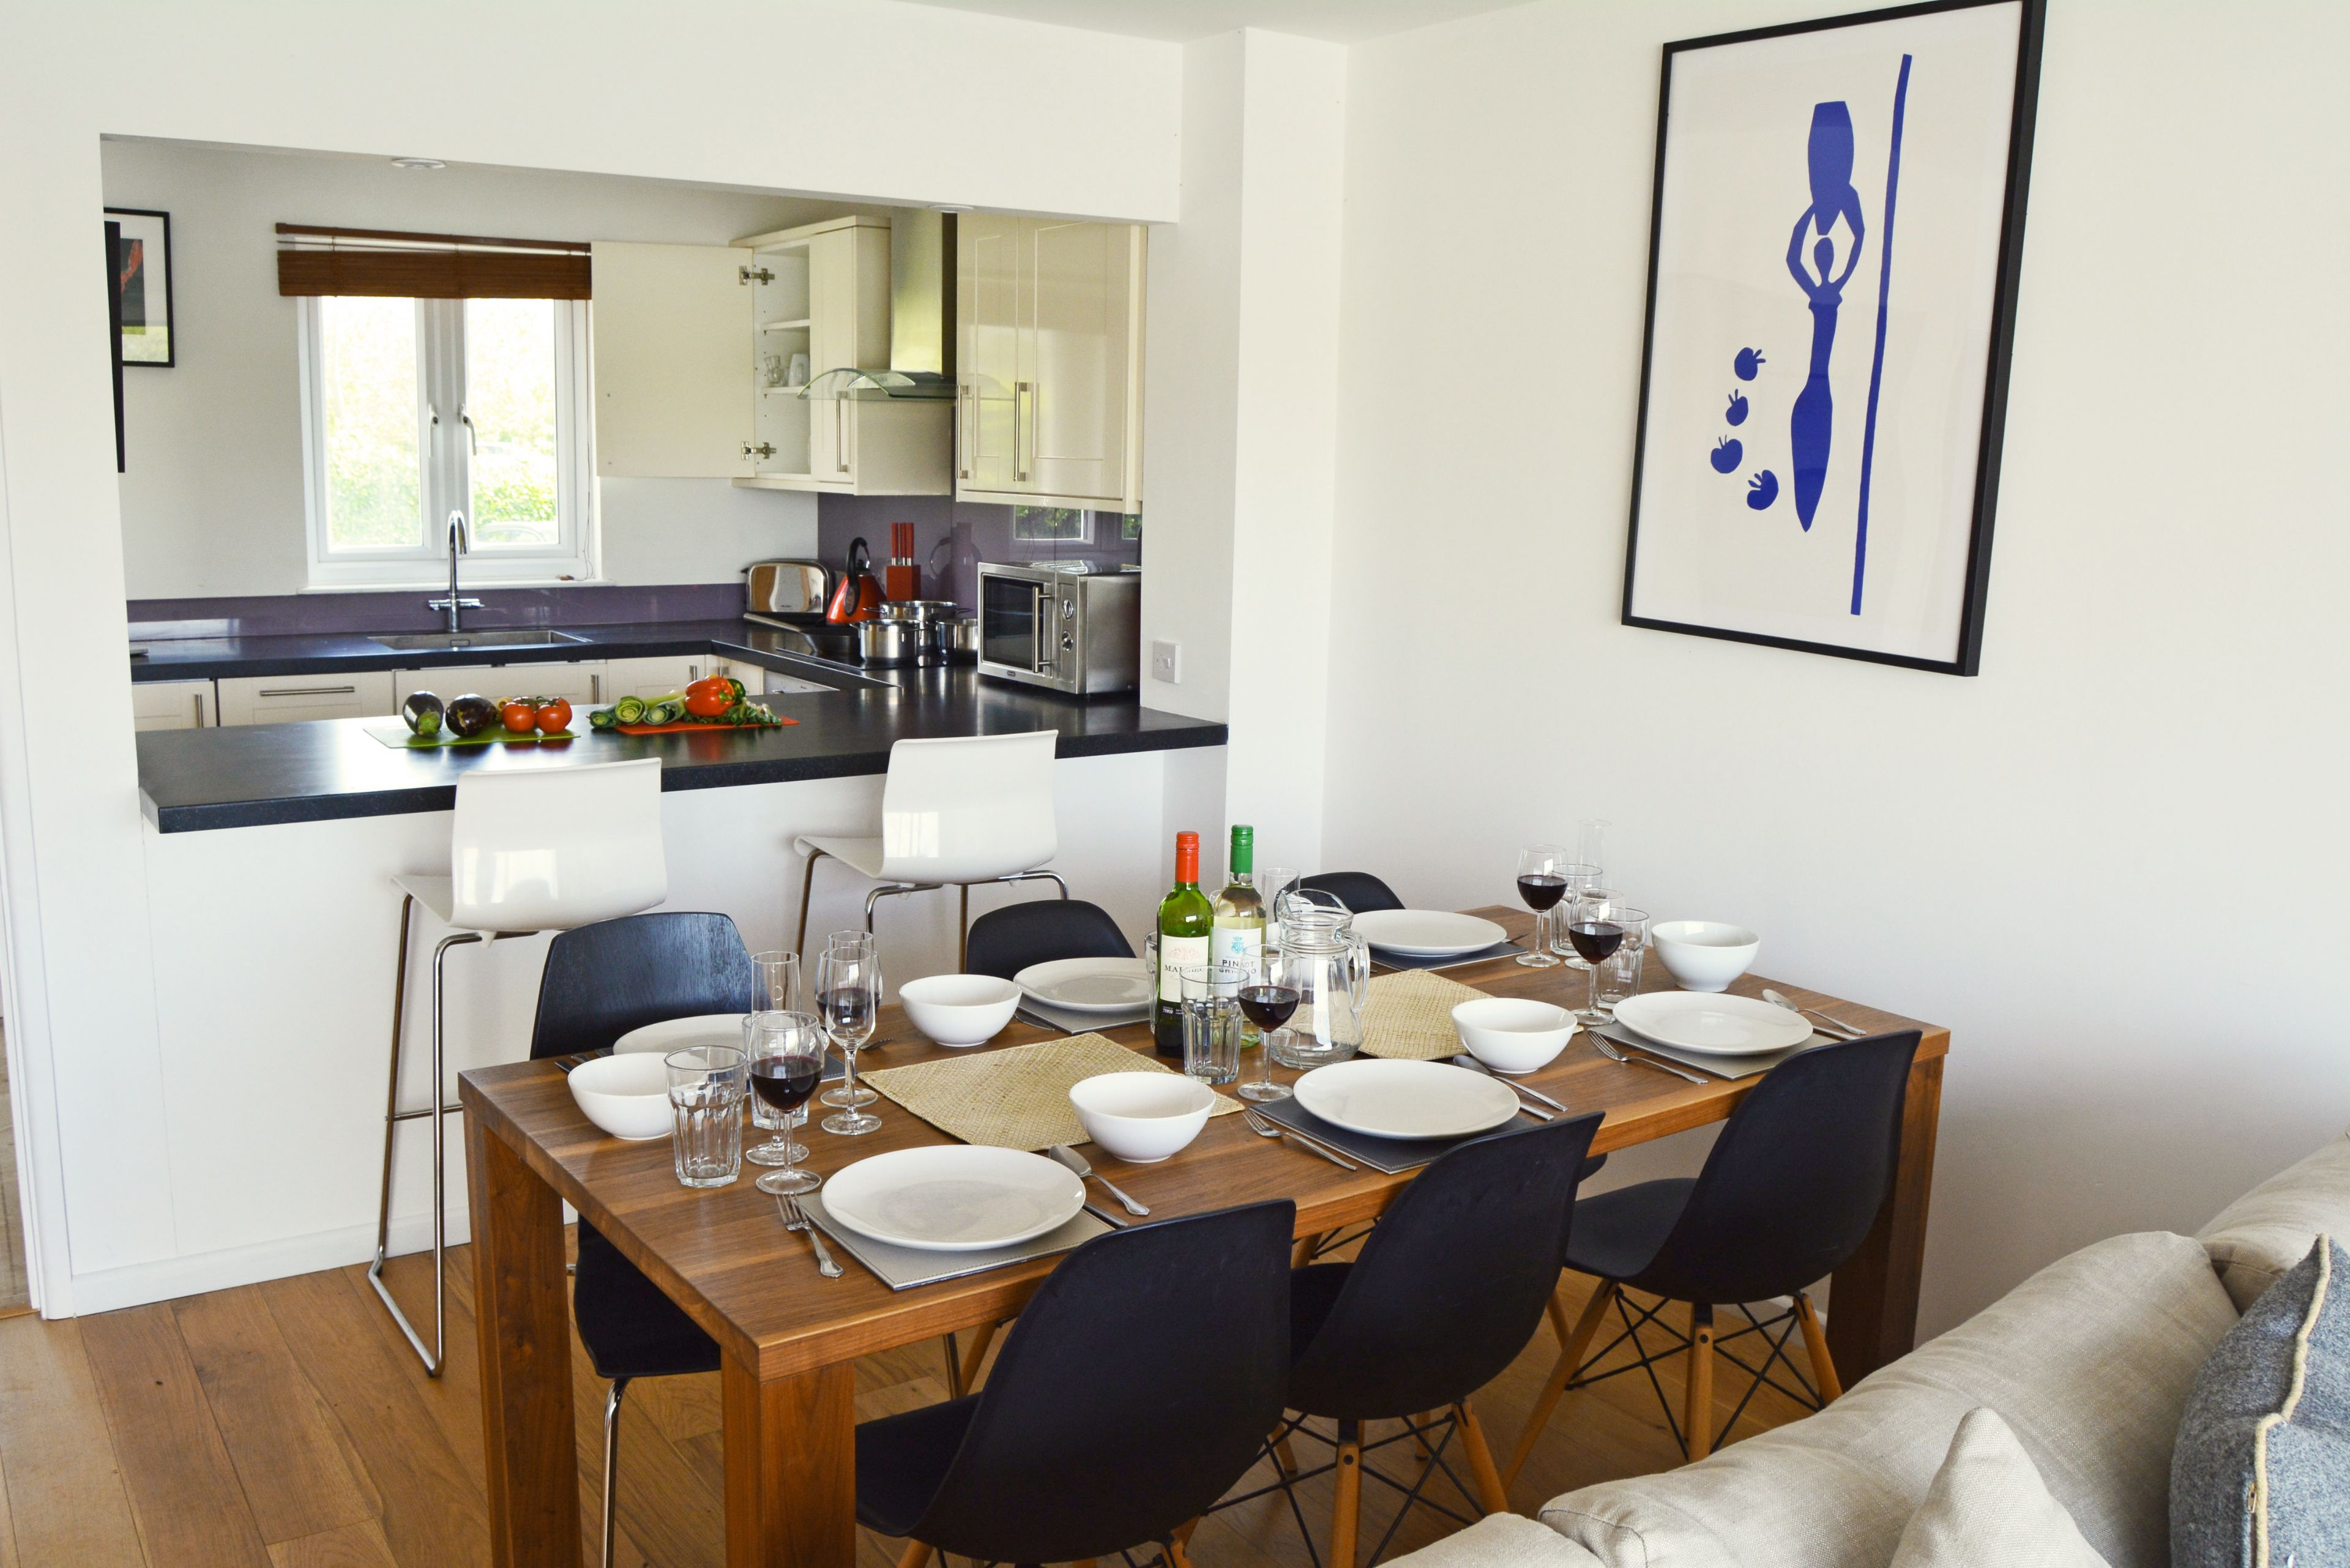 Ground floor: Dining area and kitchen in the open plan living space